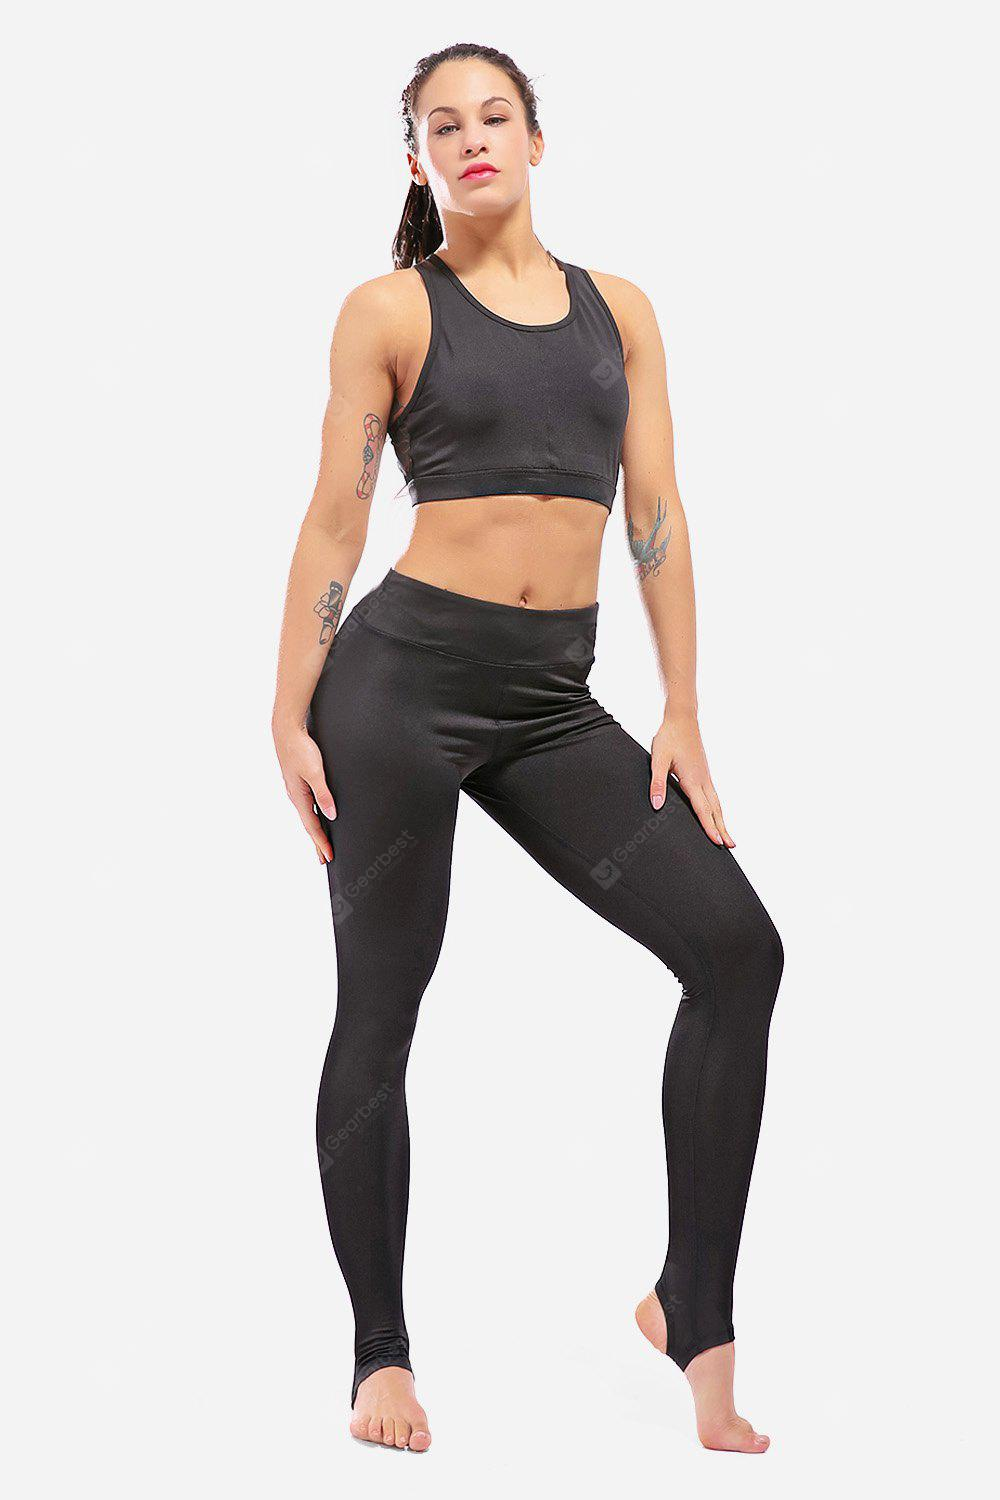 Elastic Foot Tights Leggings High Waist Female Workout Stirrup Pants